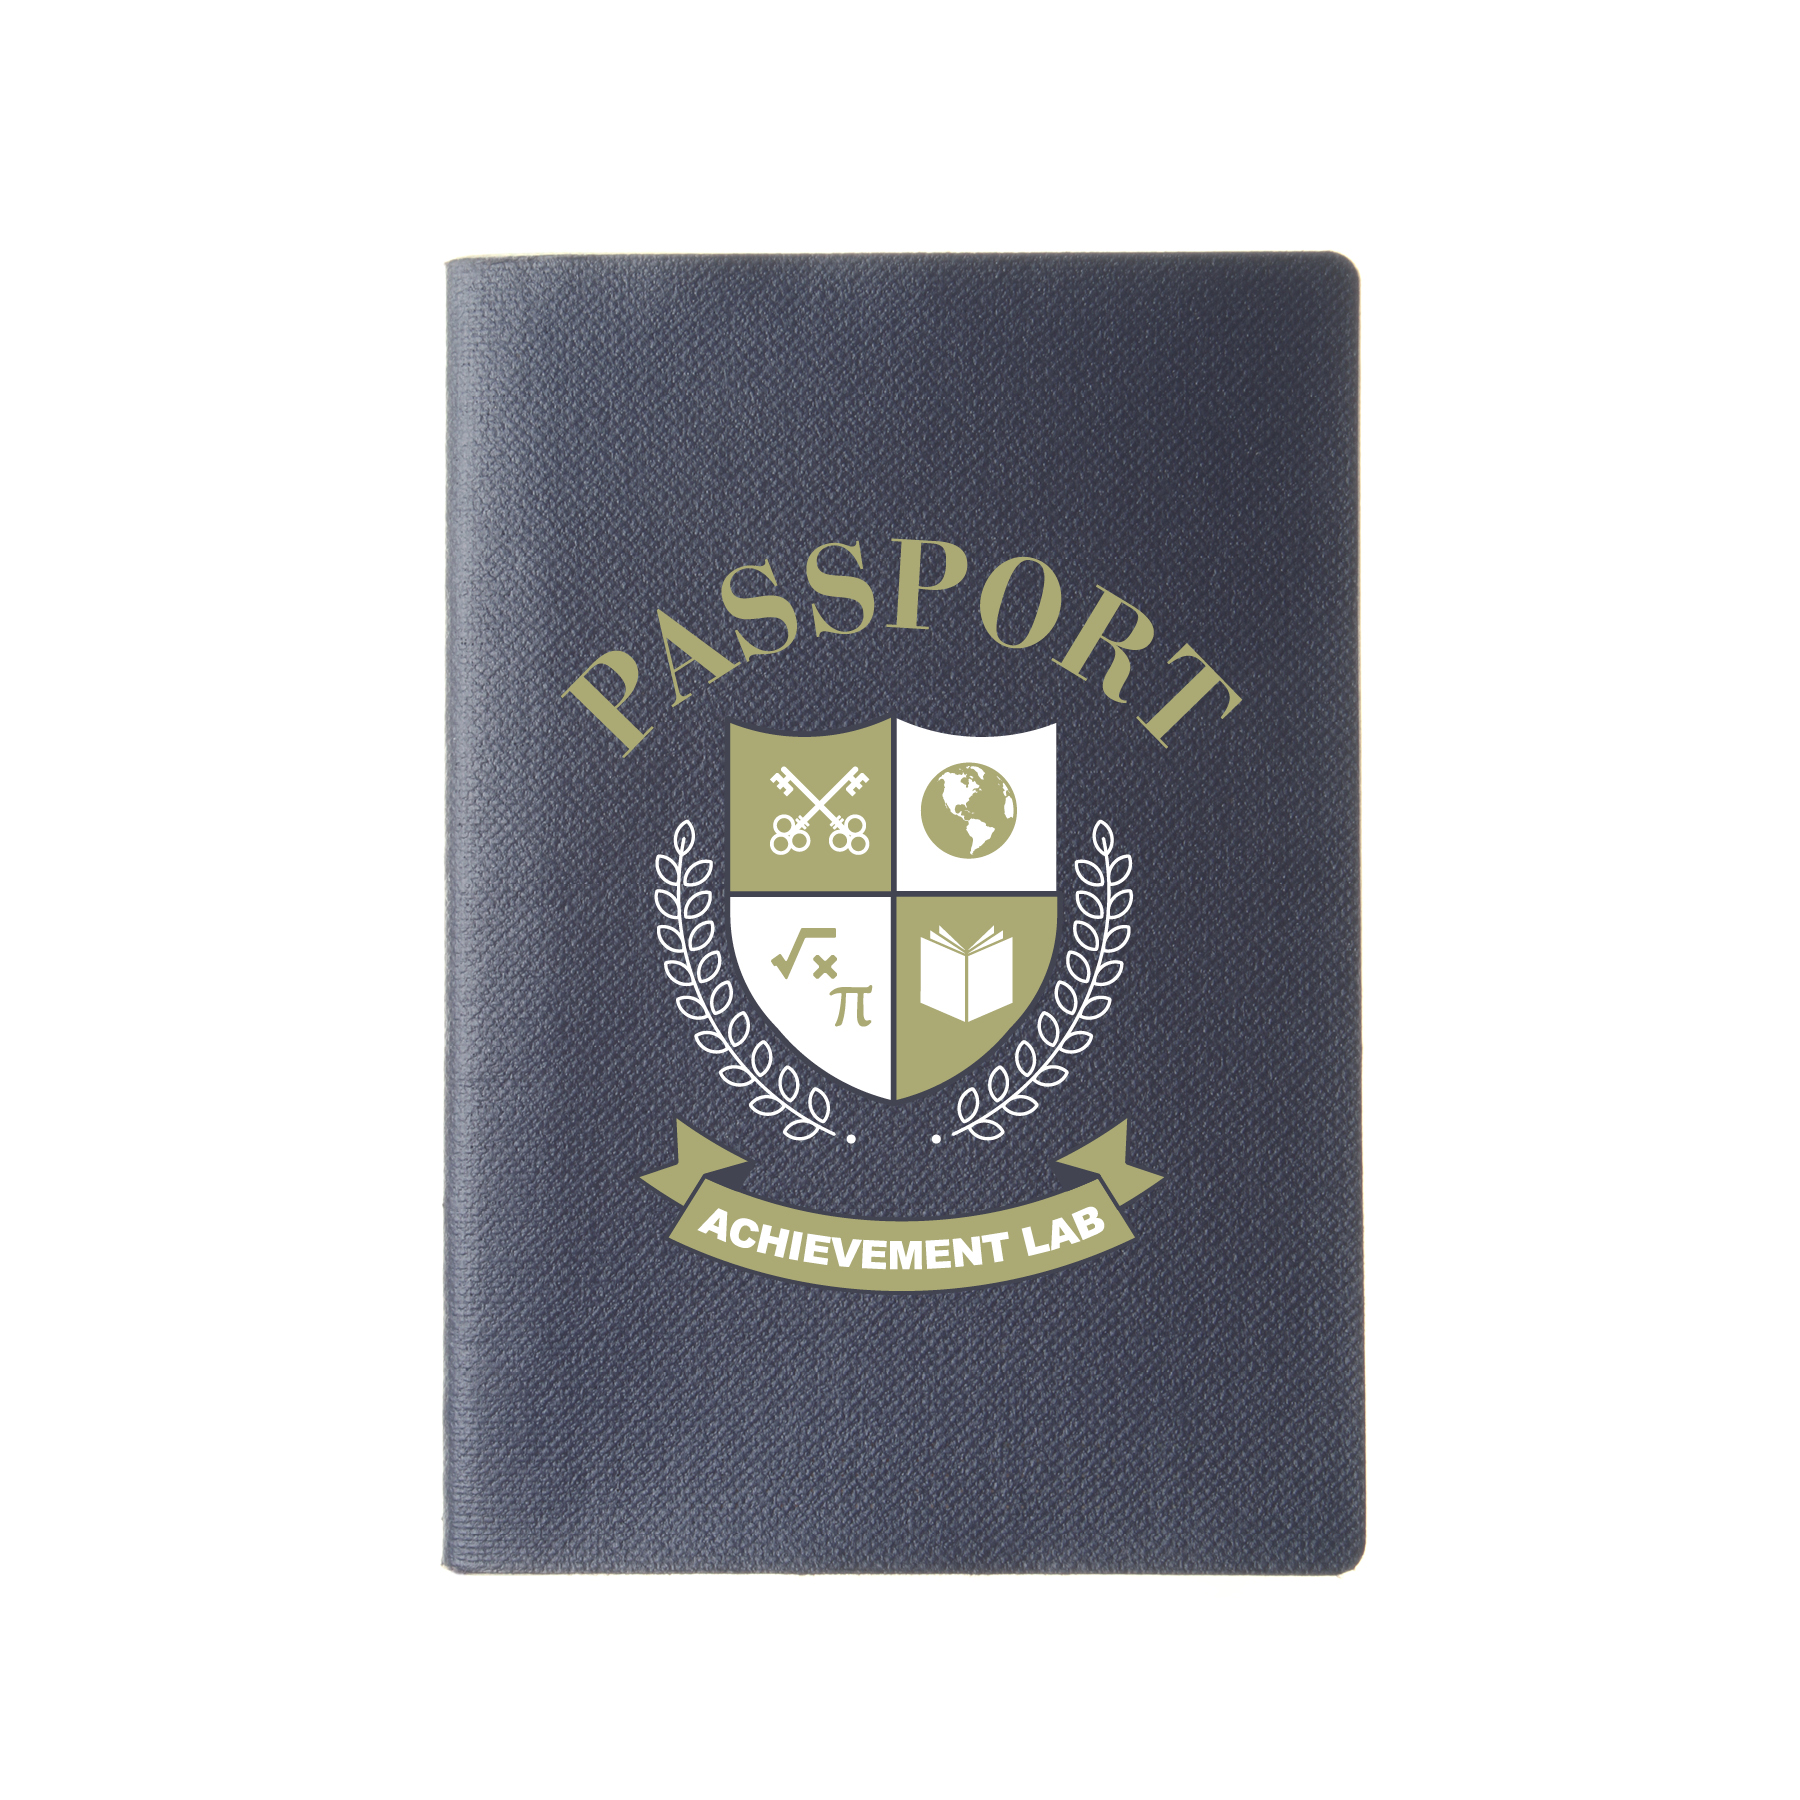 Passport_logo_091915_FINAL